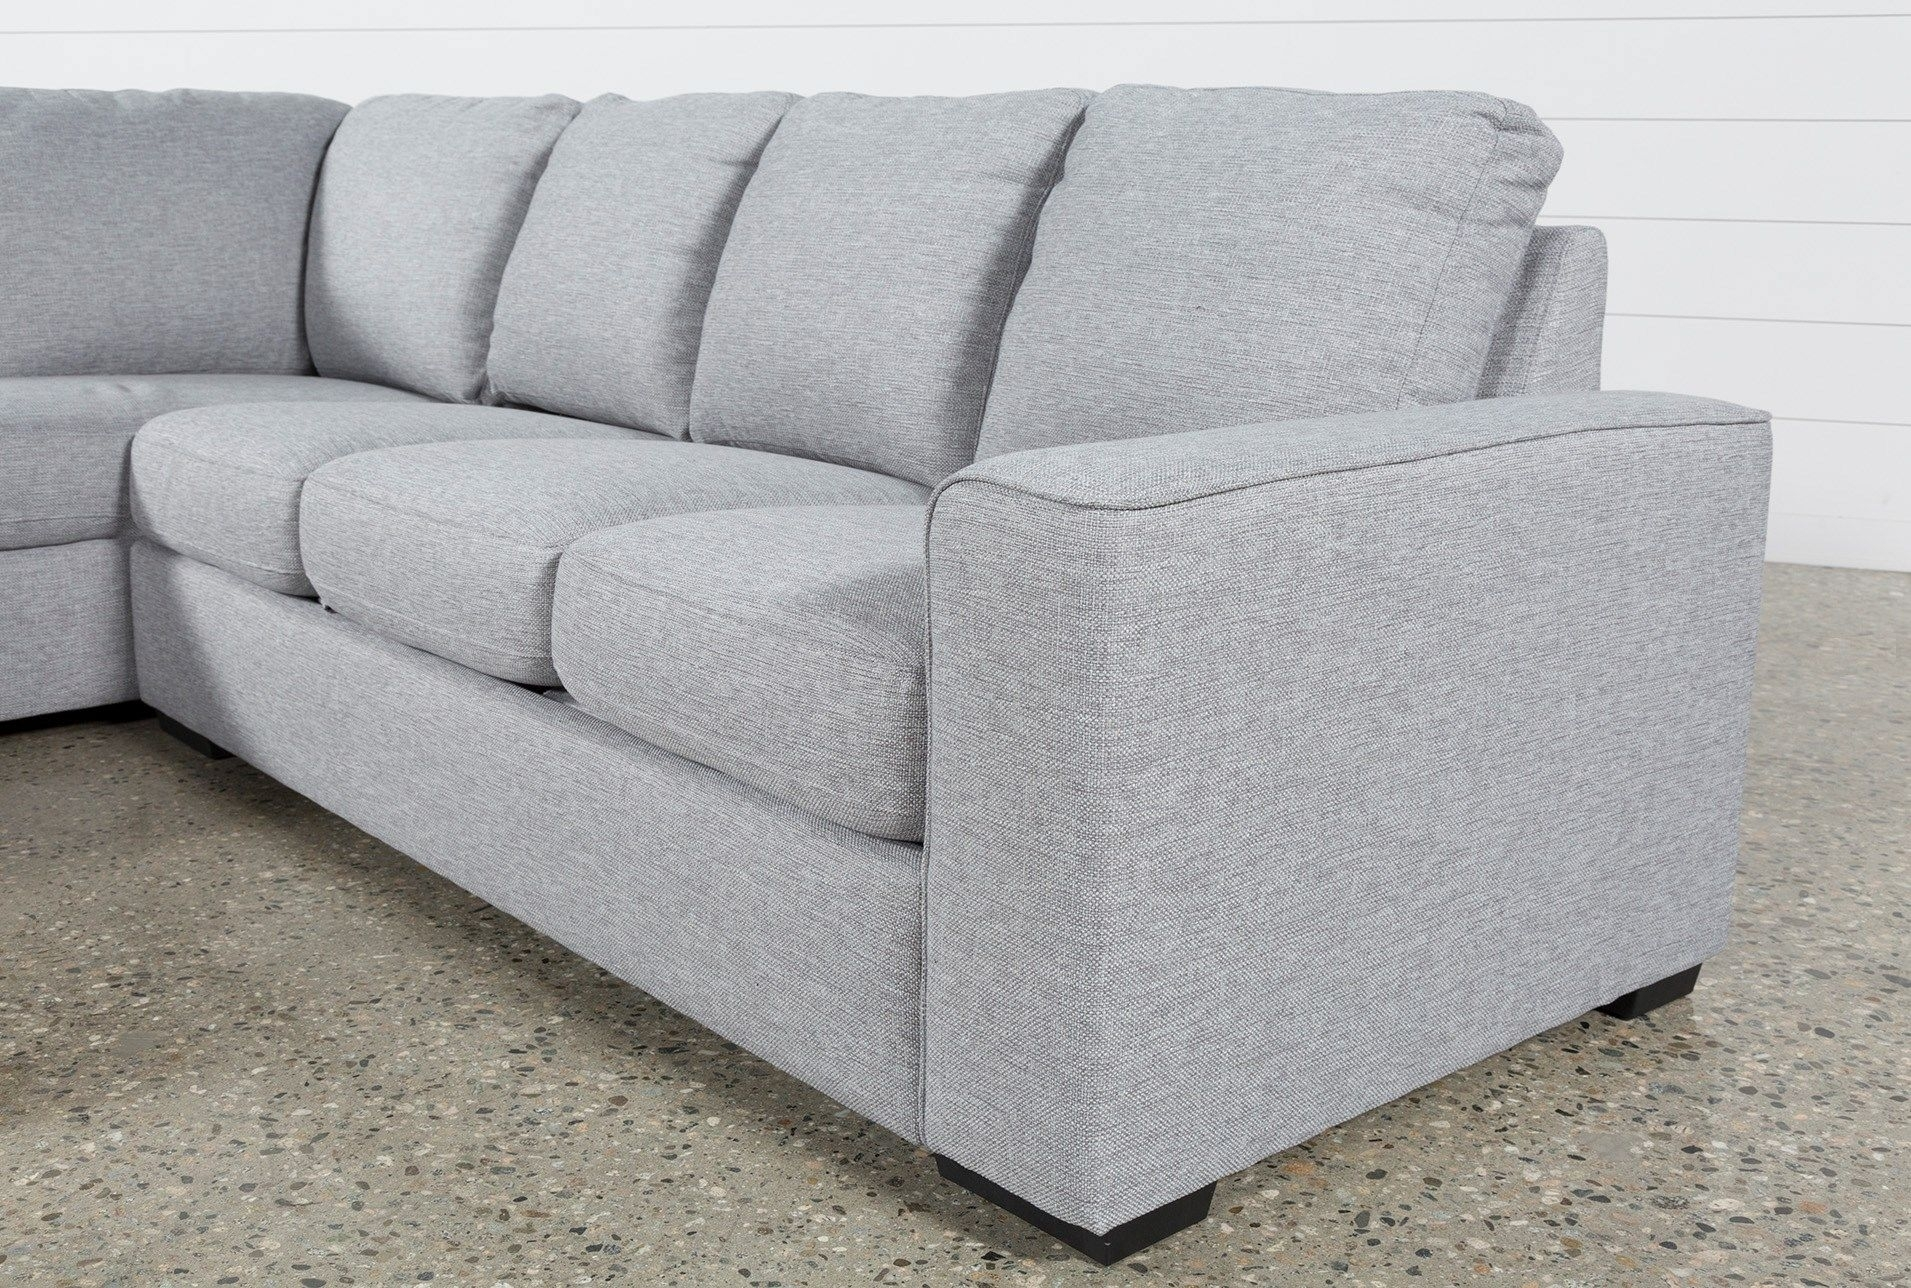 Lucy Grey 2 Piece Sectional W/laf Chaise | Gray And Room intended for Lucy Dark Grey 2 Piece Sectionals With Laf Chaise (Image 22 of 30)